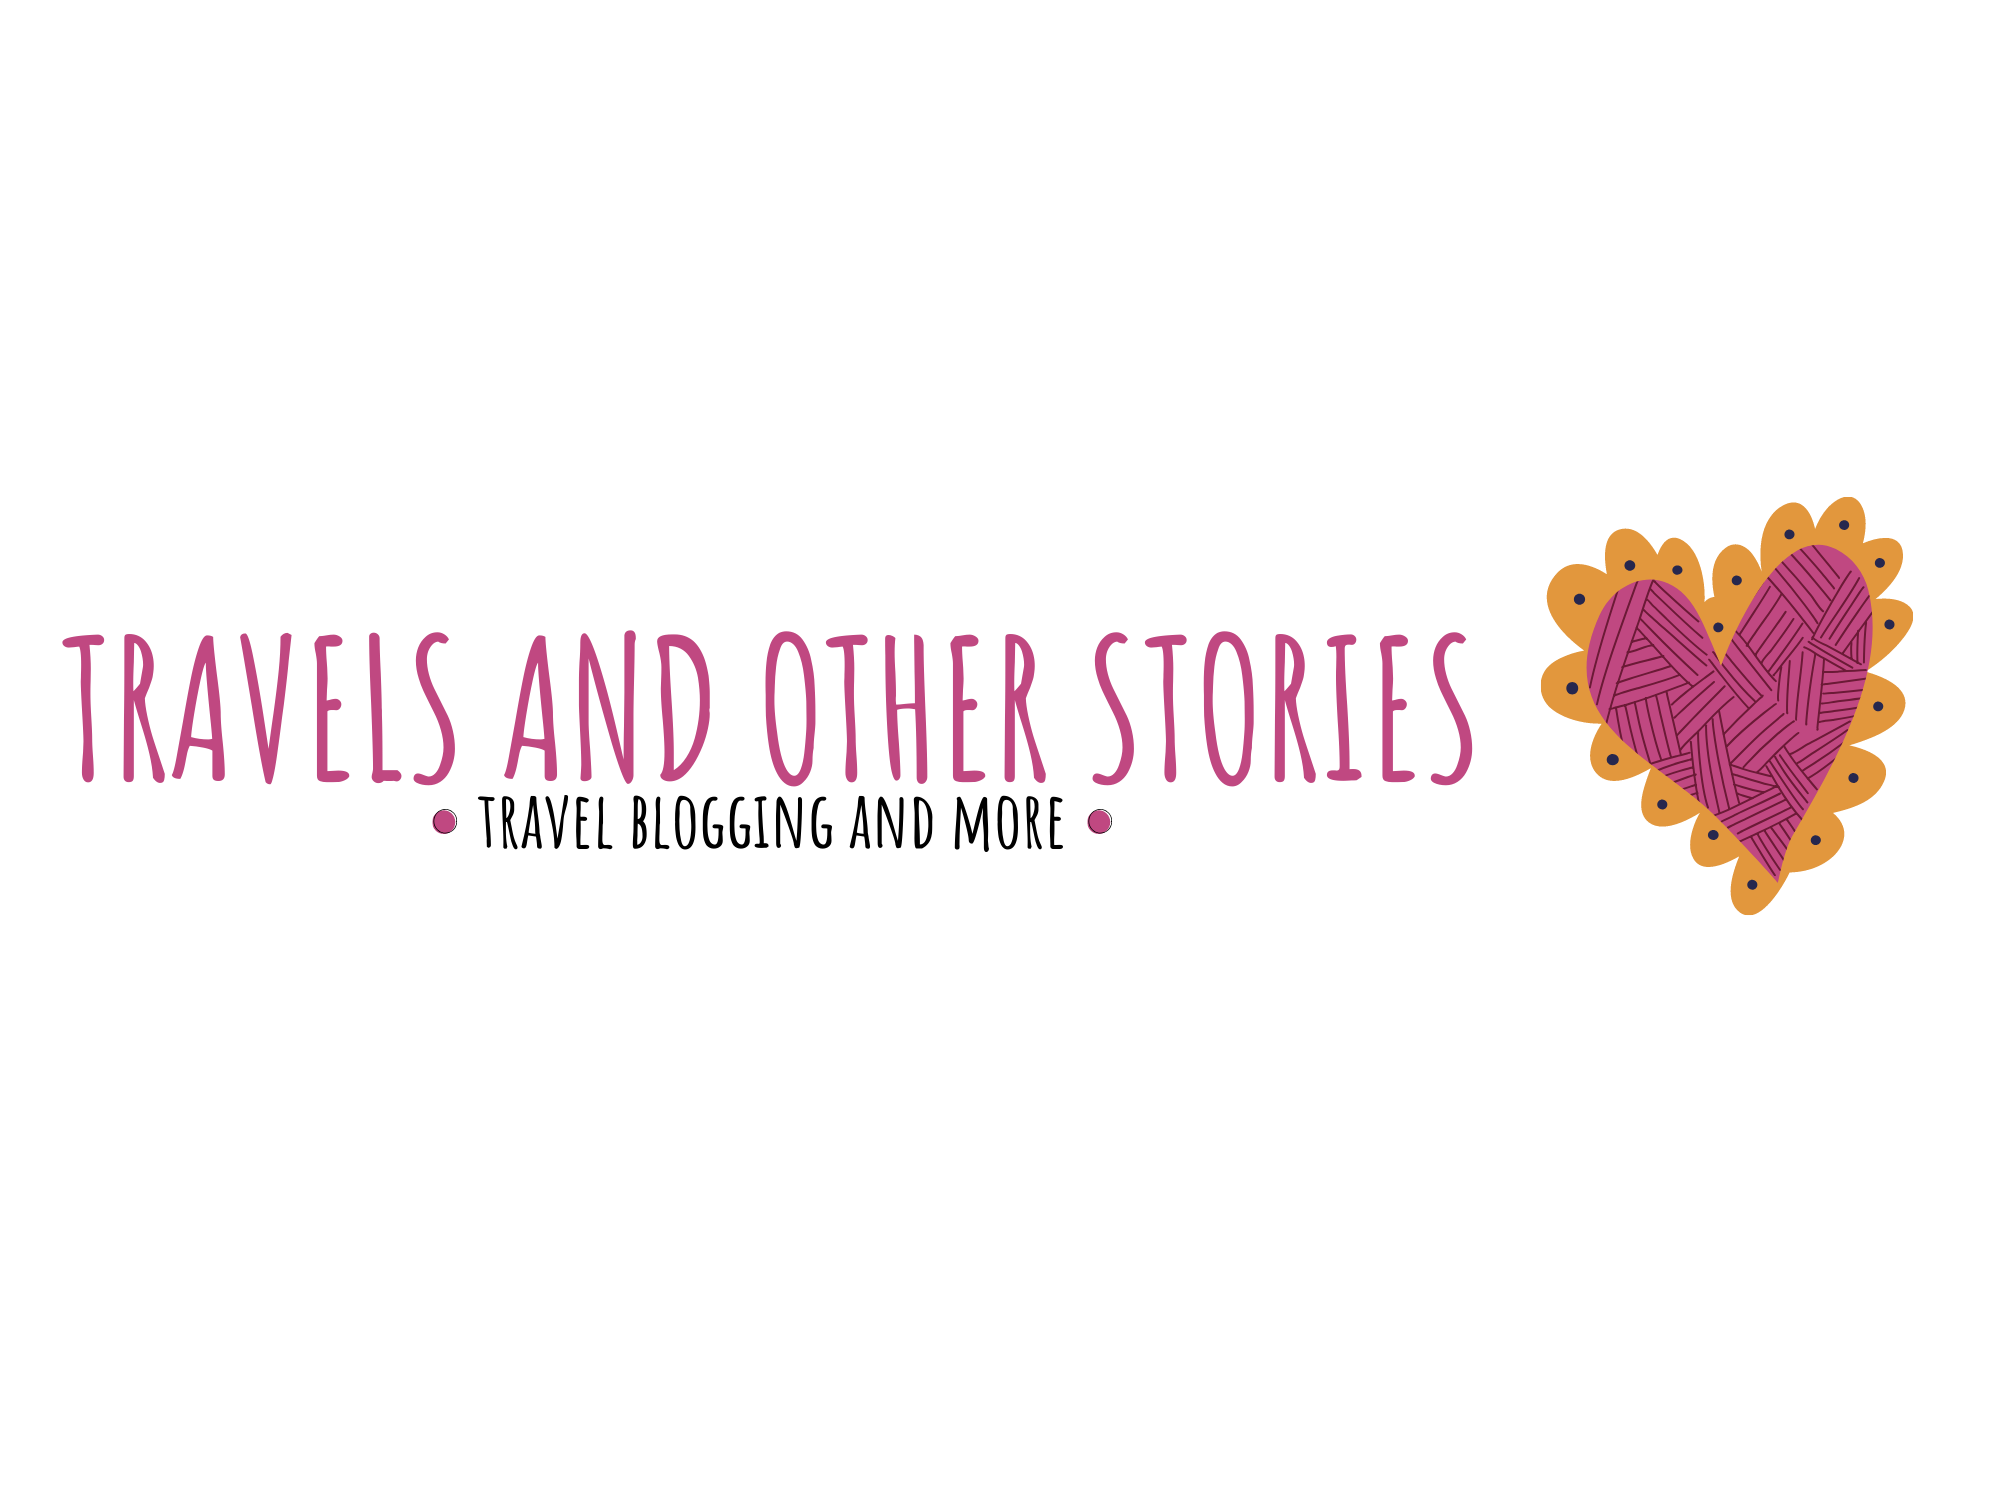 Travels and other stories